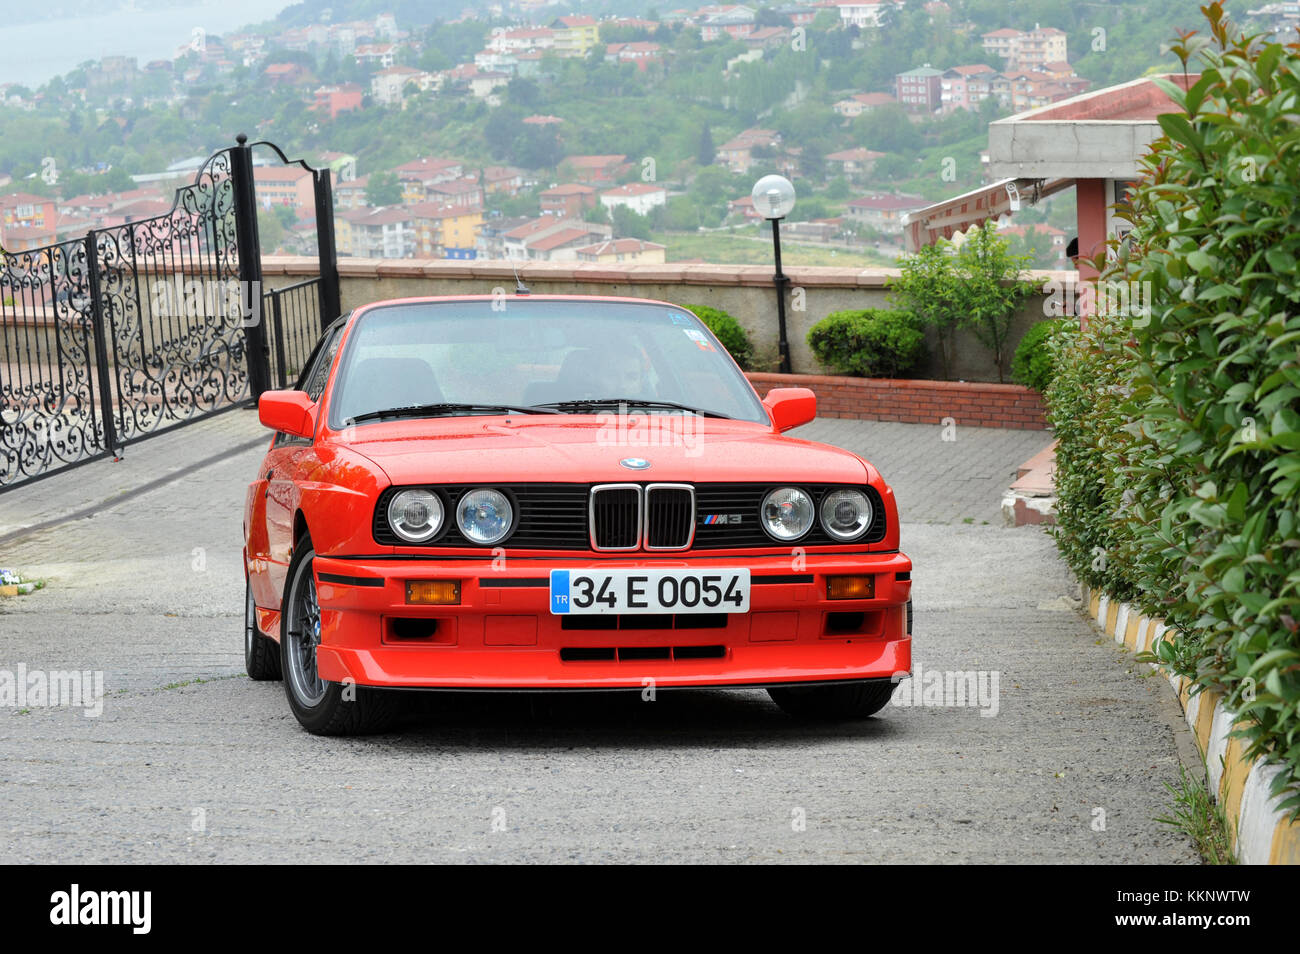 Red Bmw High Resolution Stock Photography And Images Alamy